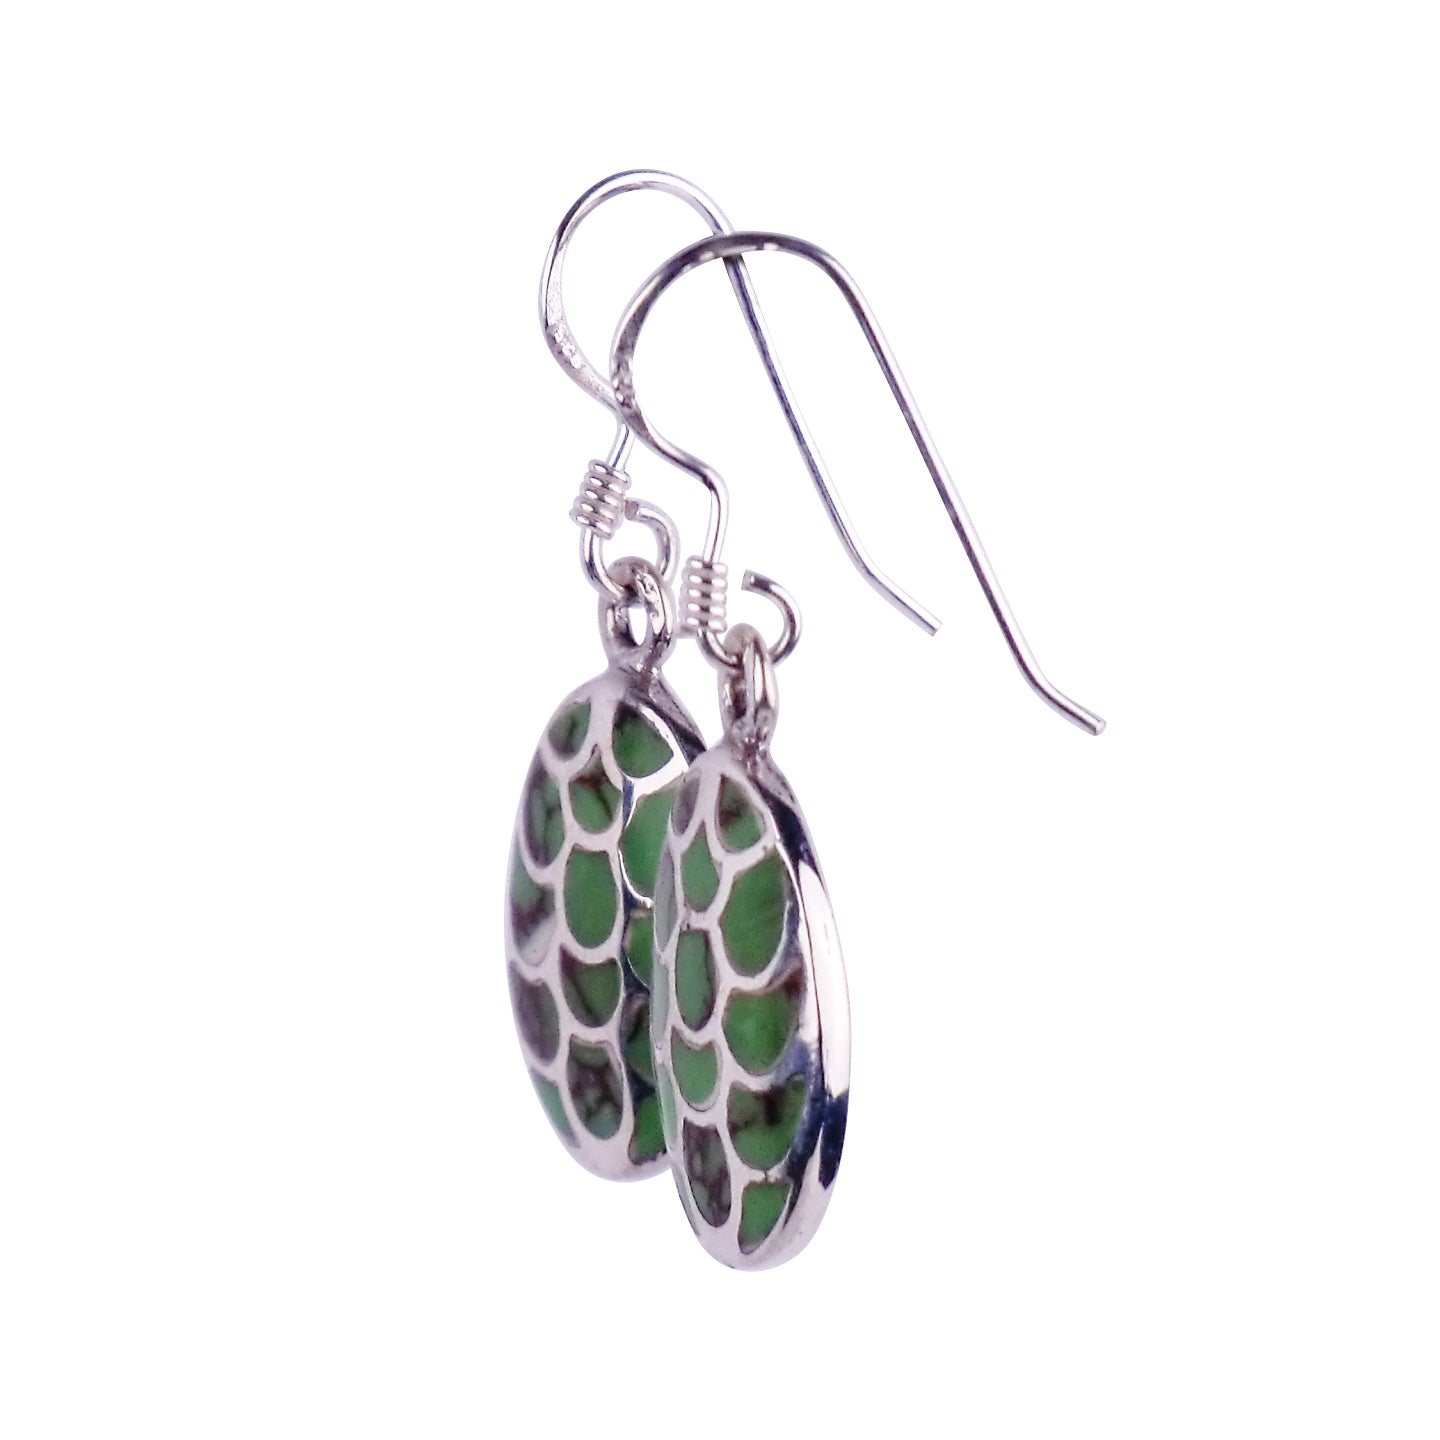 Silver Earrings with Fishscale effect Howlite Stone - Matico